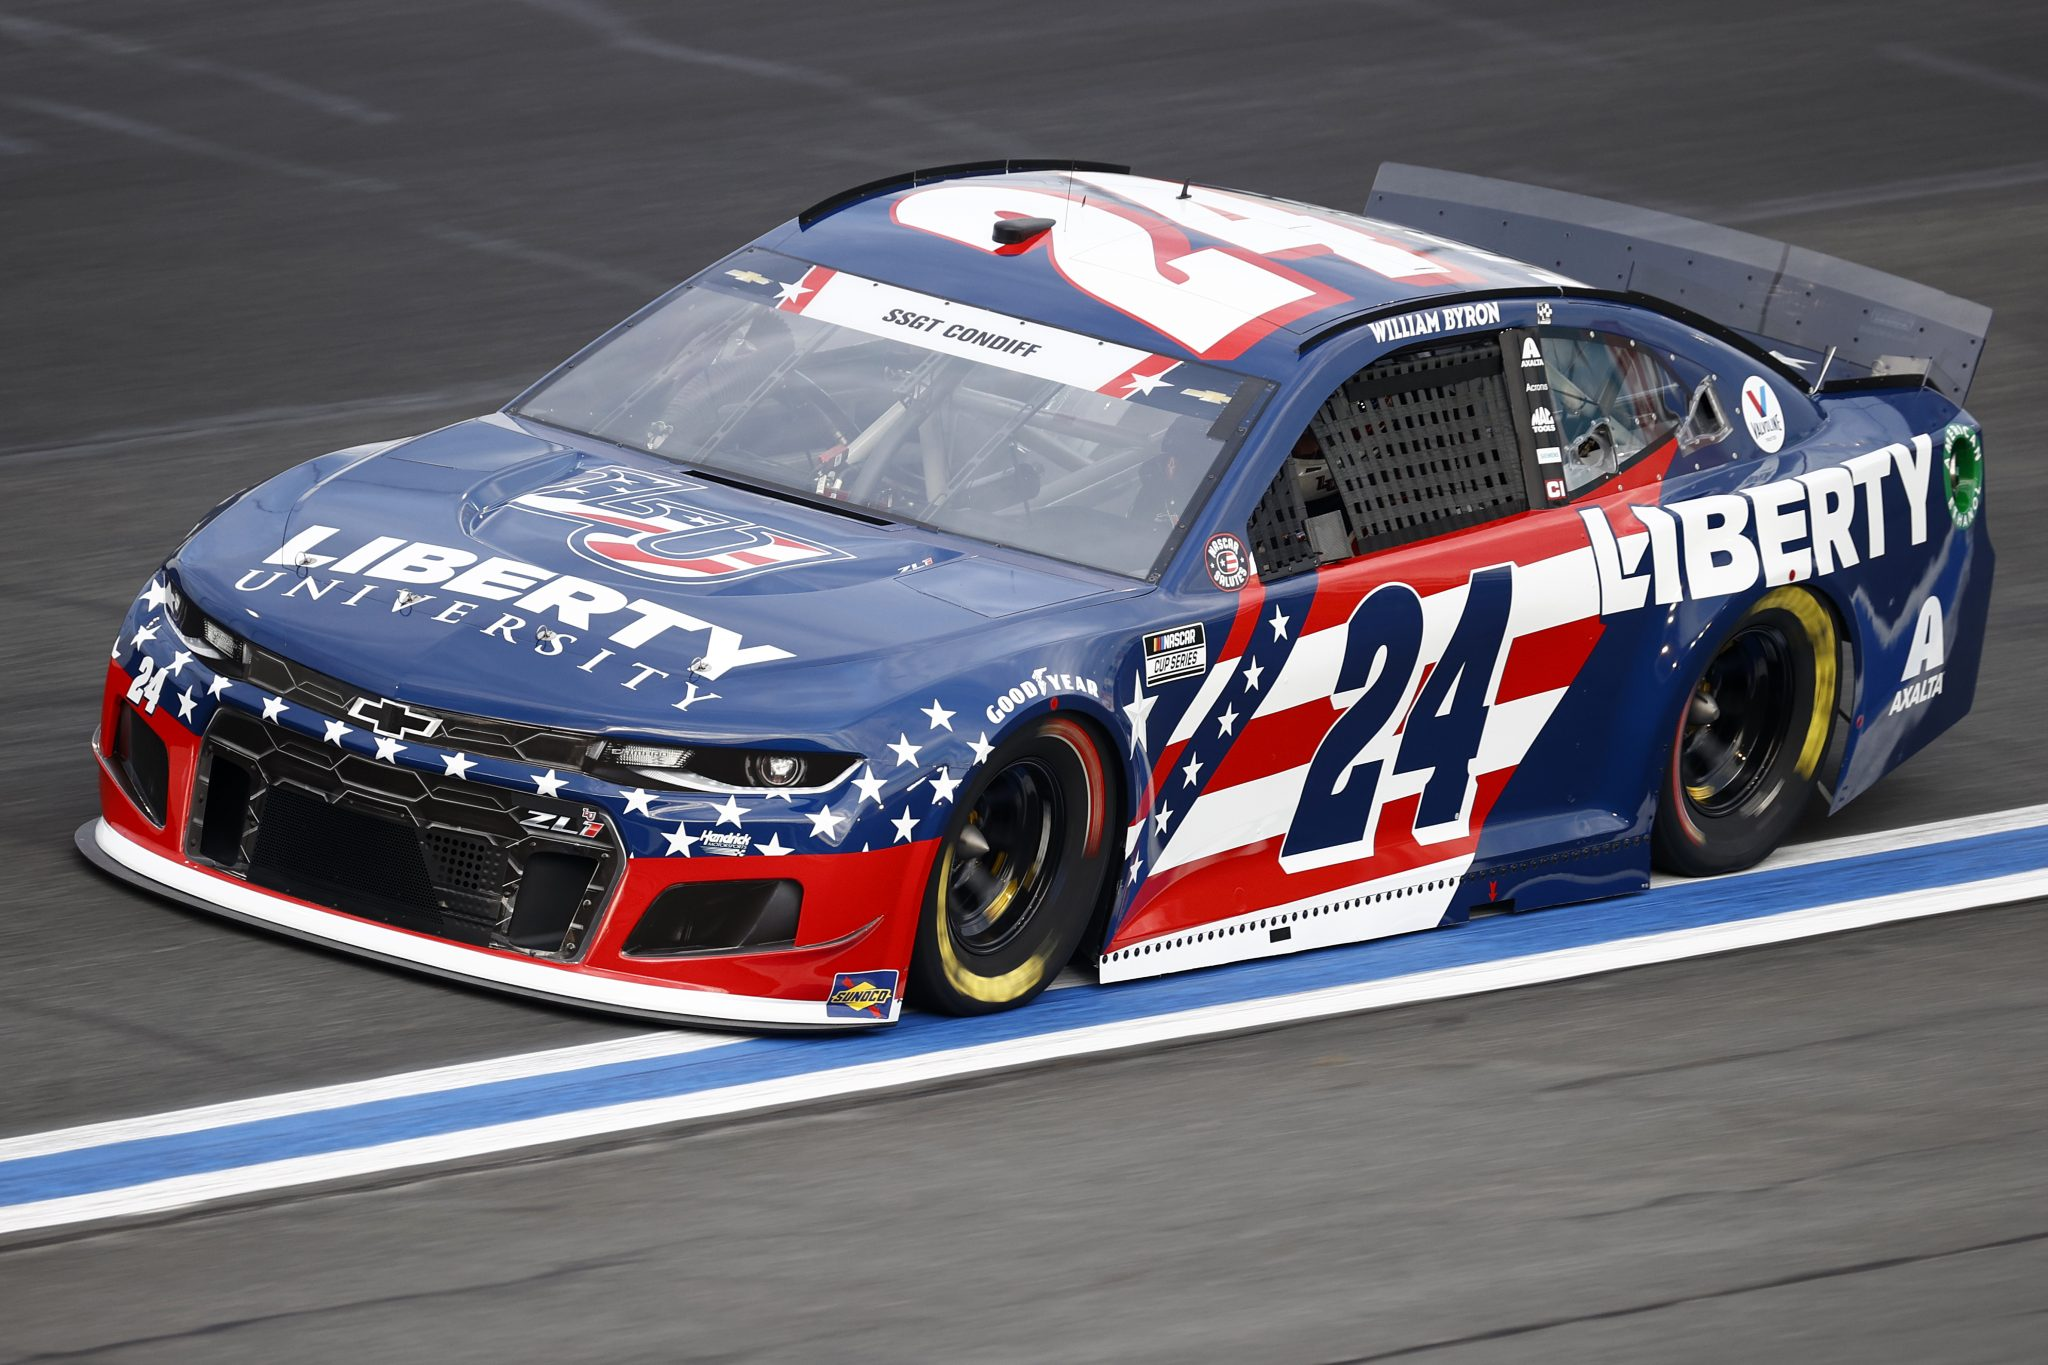 CONCORD, NORTH CAROLINA - MAY 28: William Byron, driver of the #24 Liberty University Chevrolet, drives during practice for the NASCAR Cup Series Coca-Cola 600 at Charlotte Motor Speedway on May 28, 2021 in Concord, North Carolina. (Photo by Jared C. Tilton/Getty Images) | Getty Images